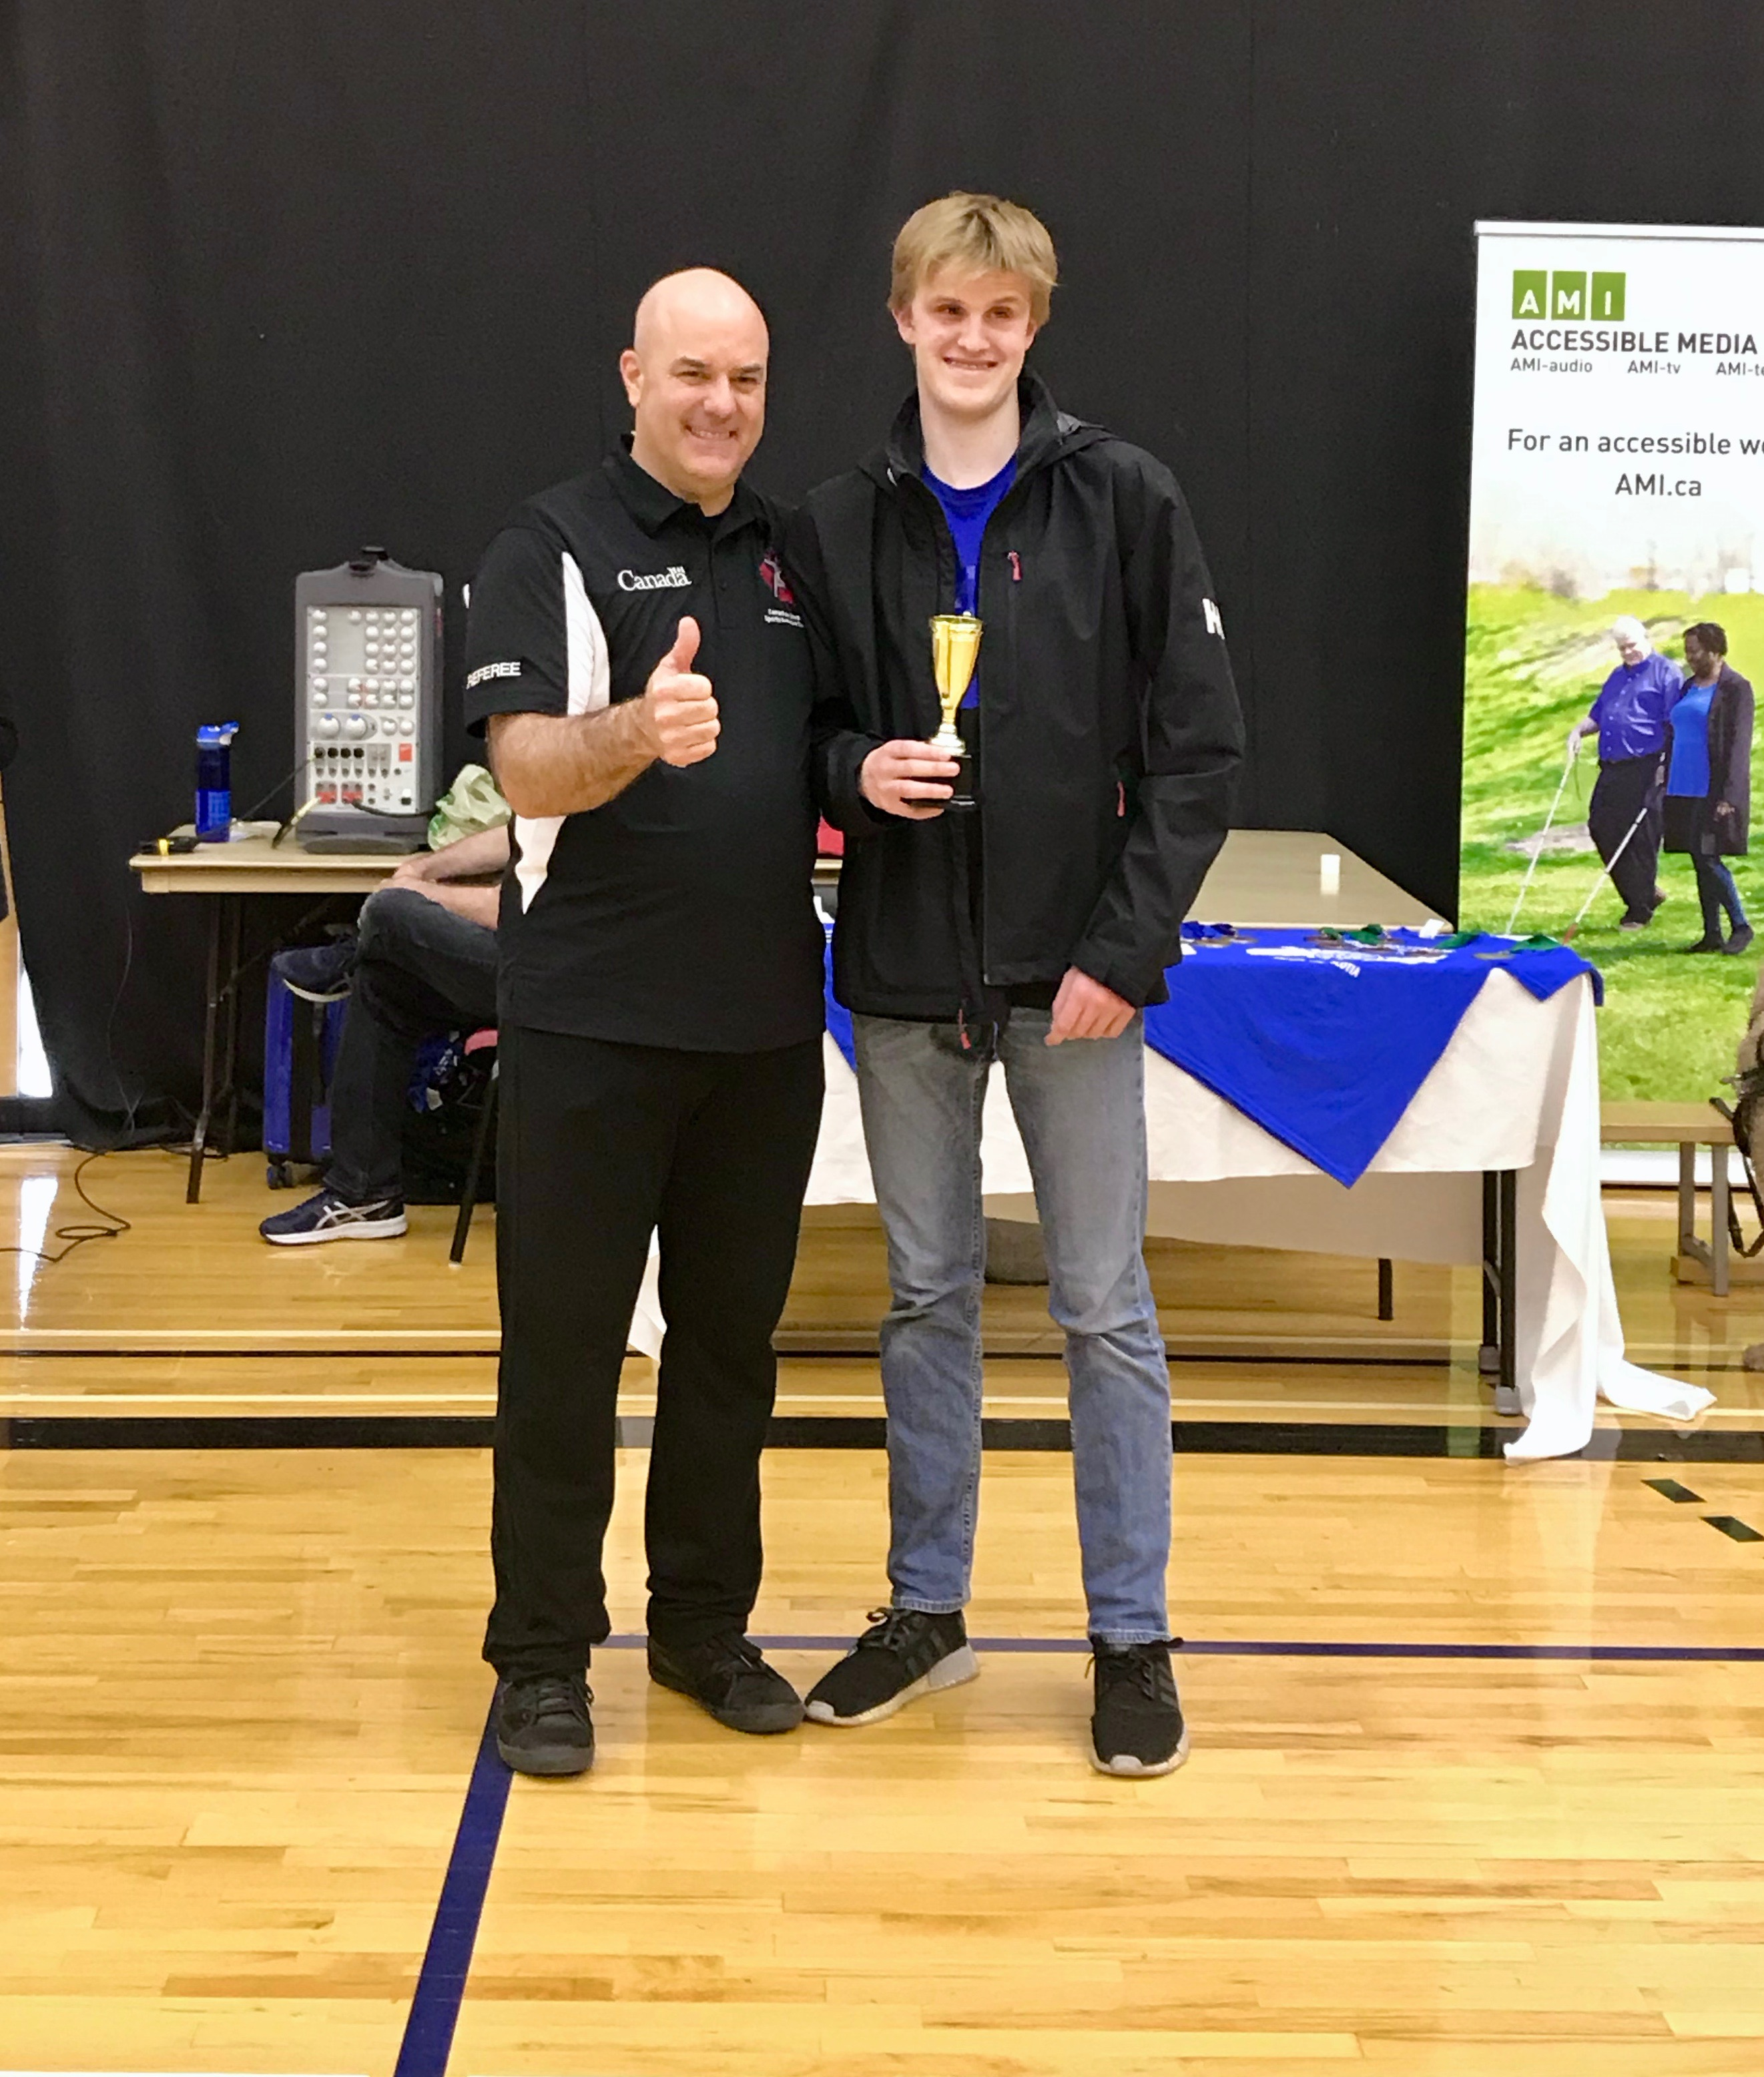 Nova Scotia's Nick Gentlemen with Spirit Award 2019